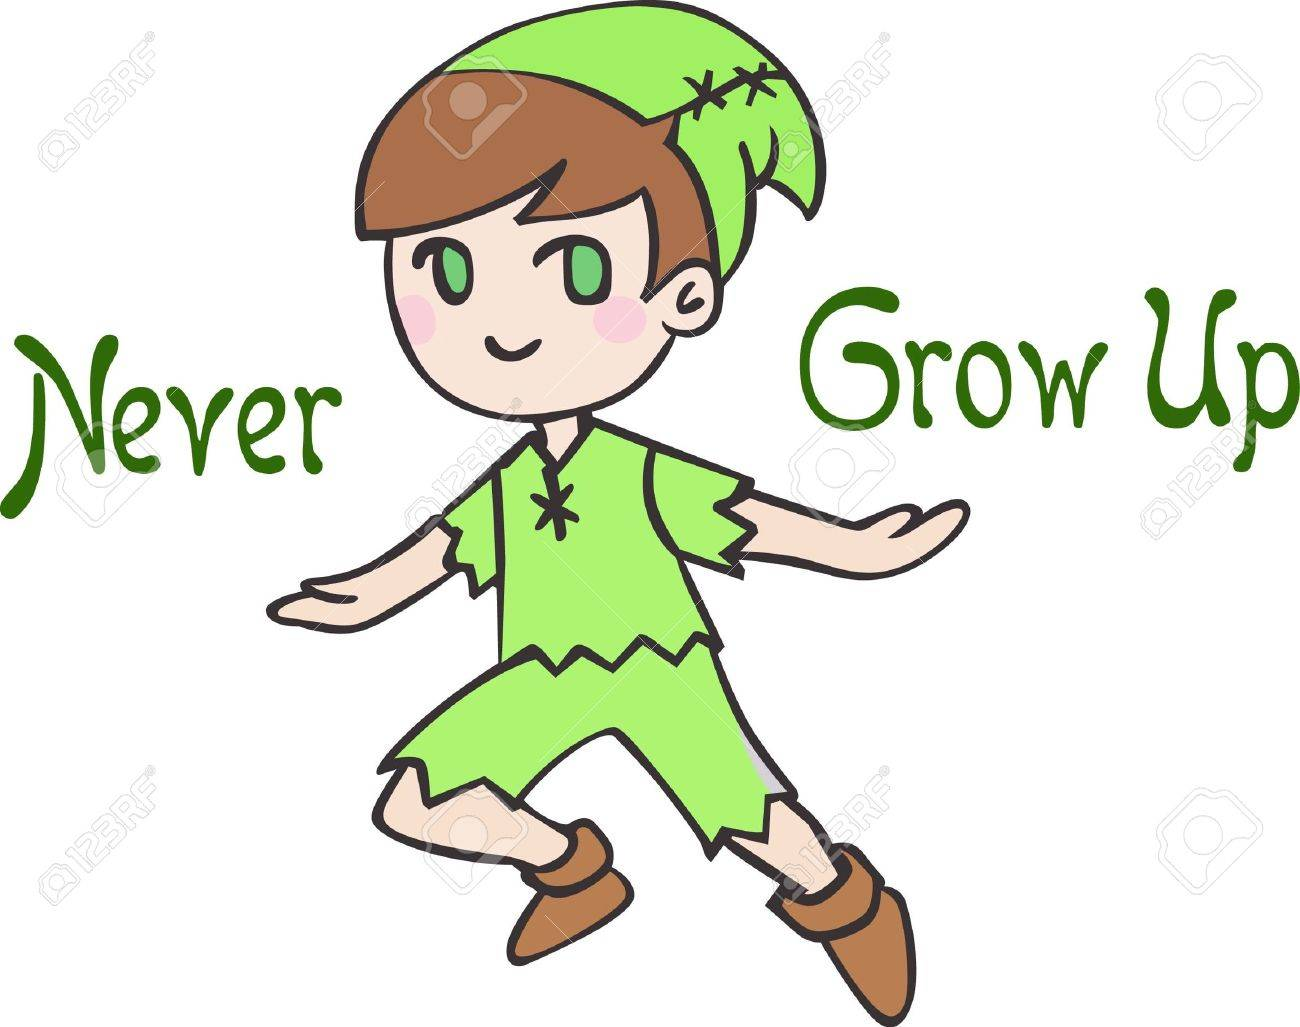 Have peter pan for a child's room decor. - 45349235